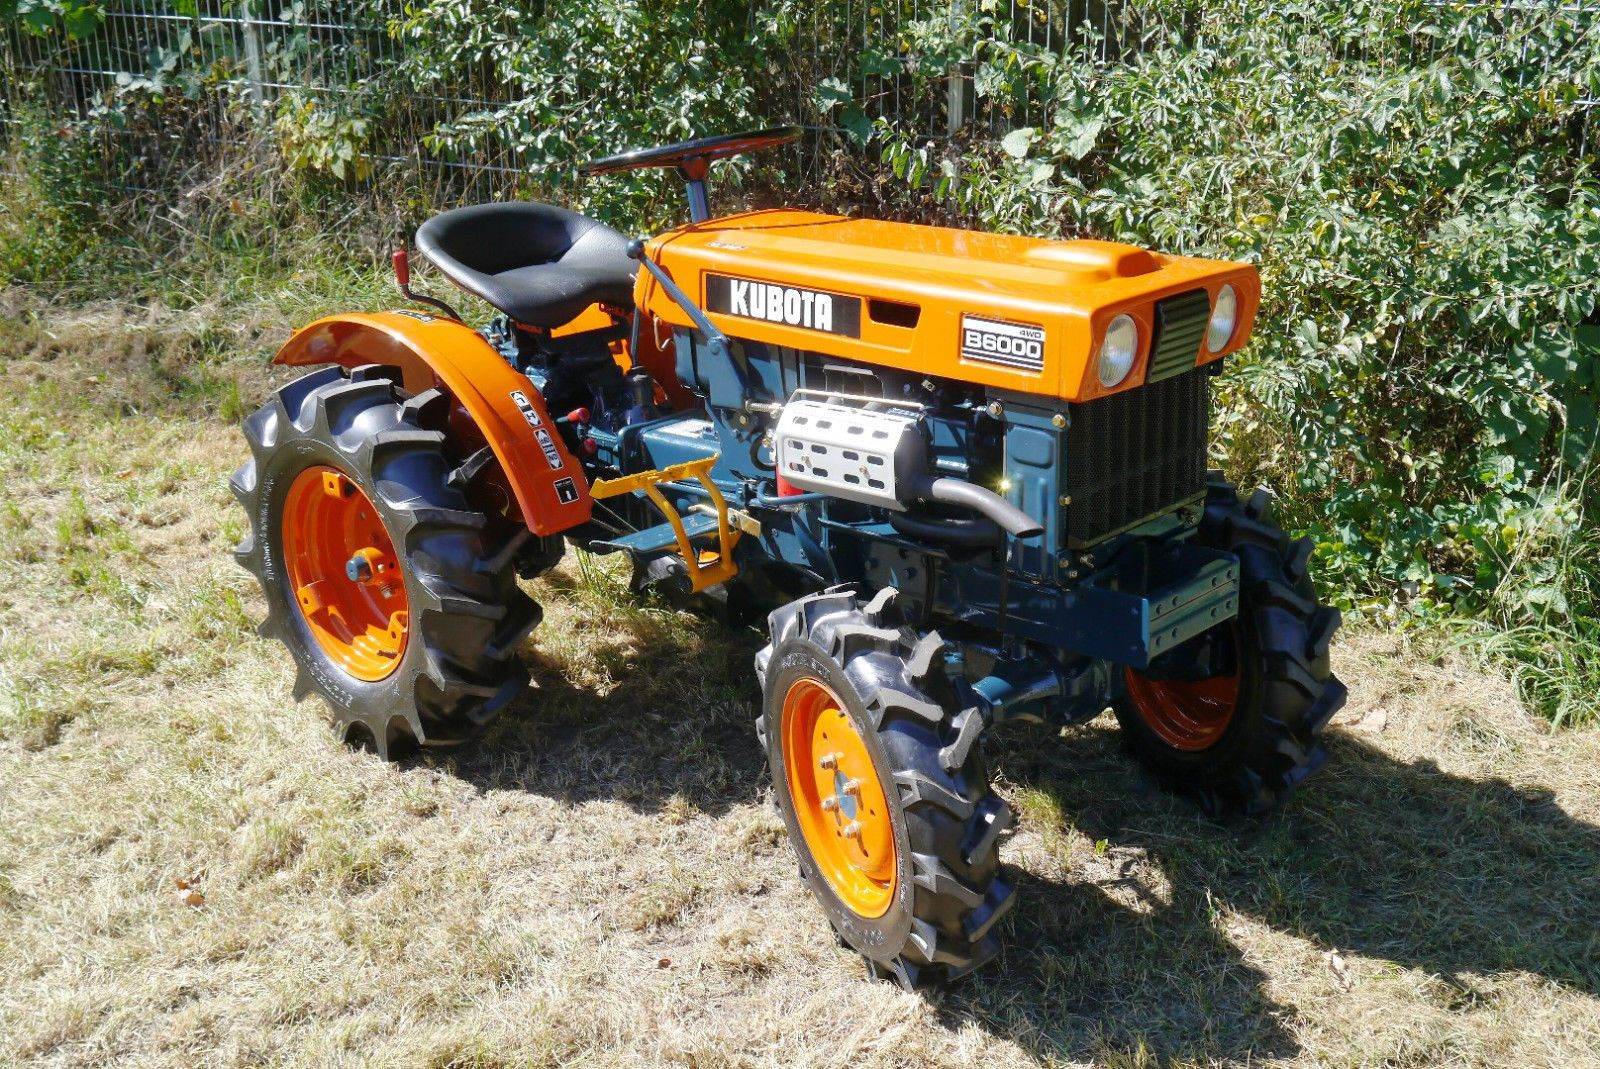 [DIAGRAM_09CH]  46E94 B7000 Kubota Tractor Wiring Diagram | Wiring Resources | Kubota Lawn Tractor Wiring Diagram |  | Wiring Resources